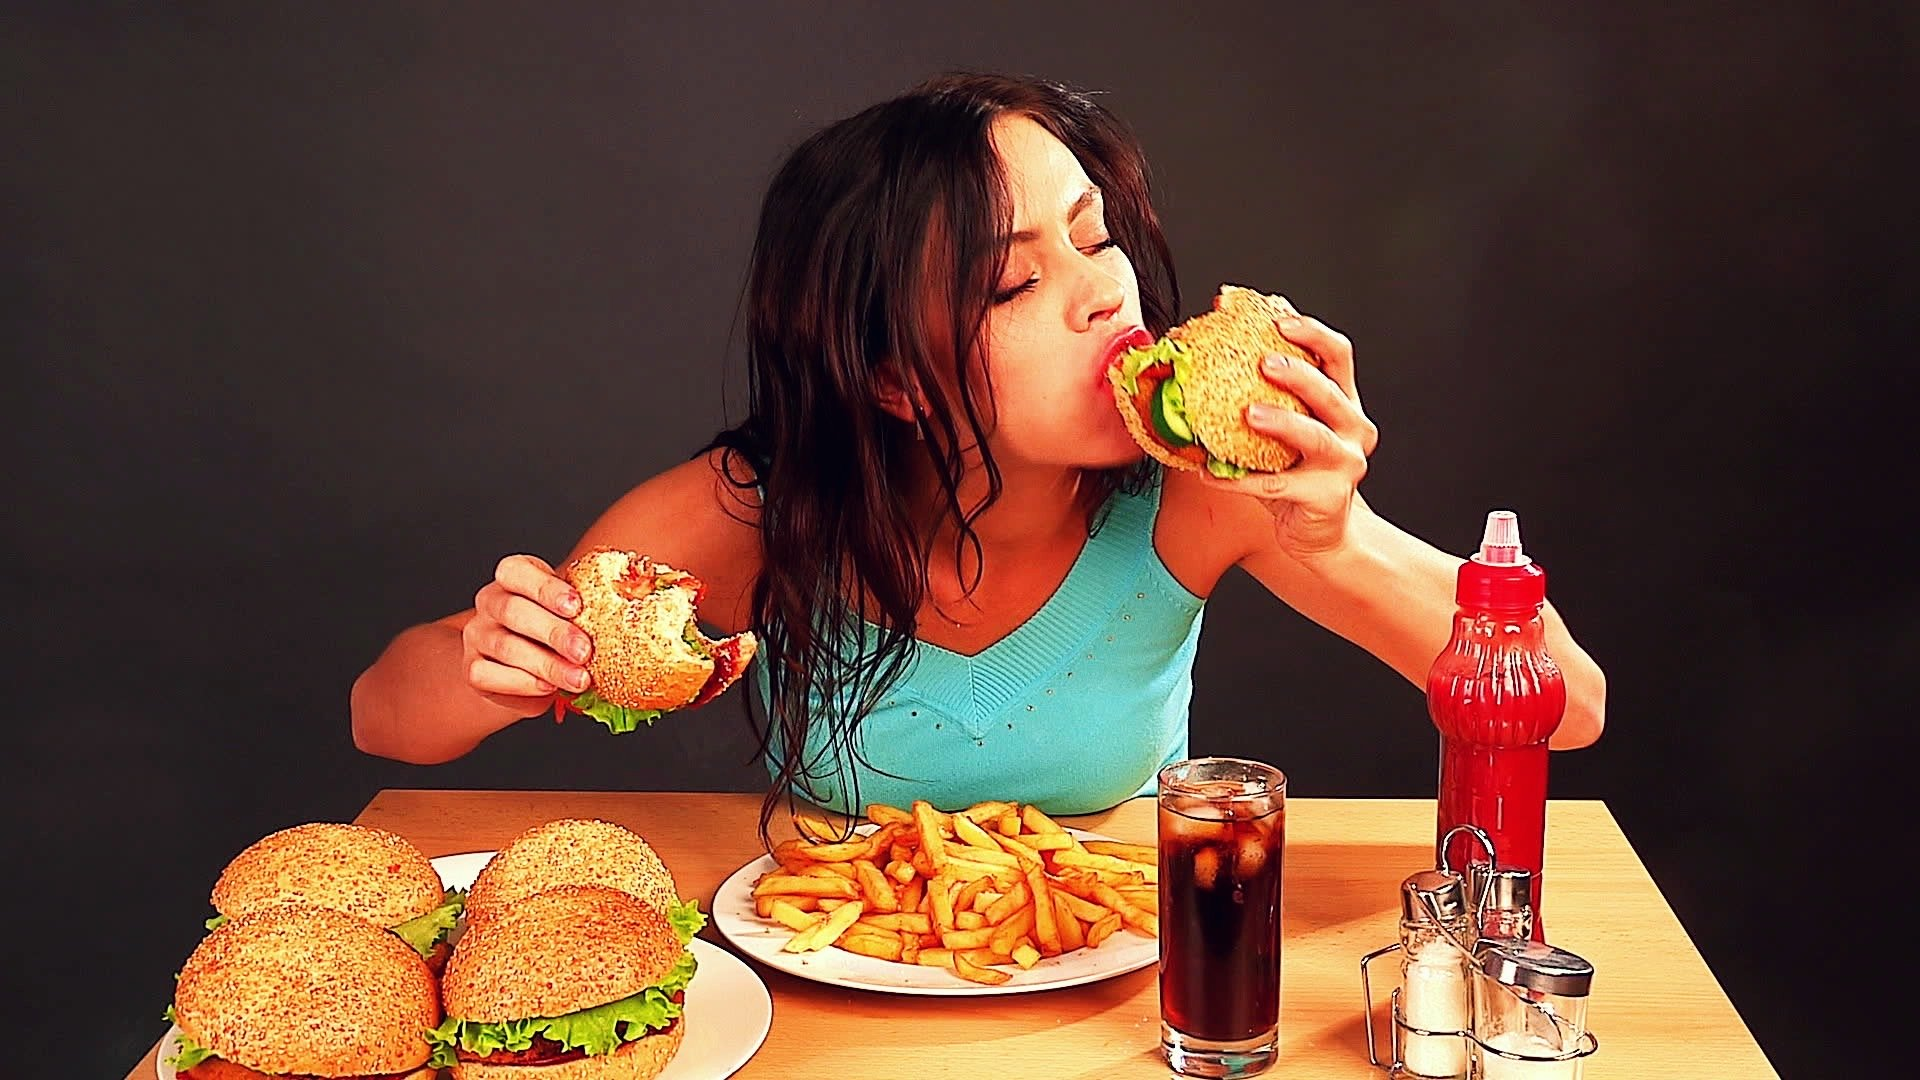 6 Foods That Are Bad For Your Health (Avoid Them!) – Health Mag